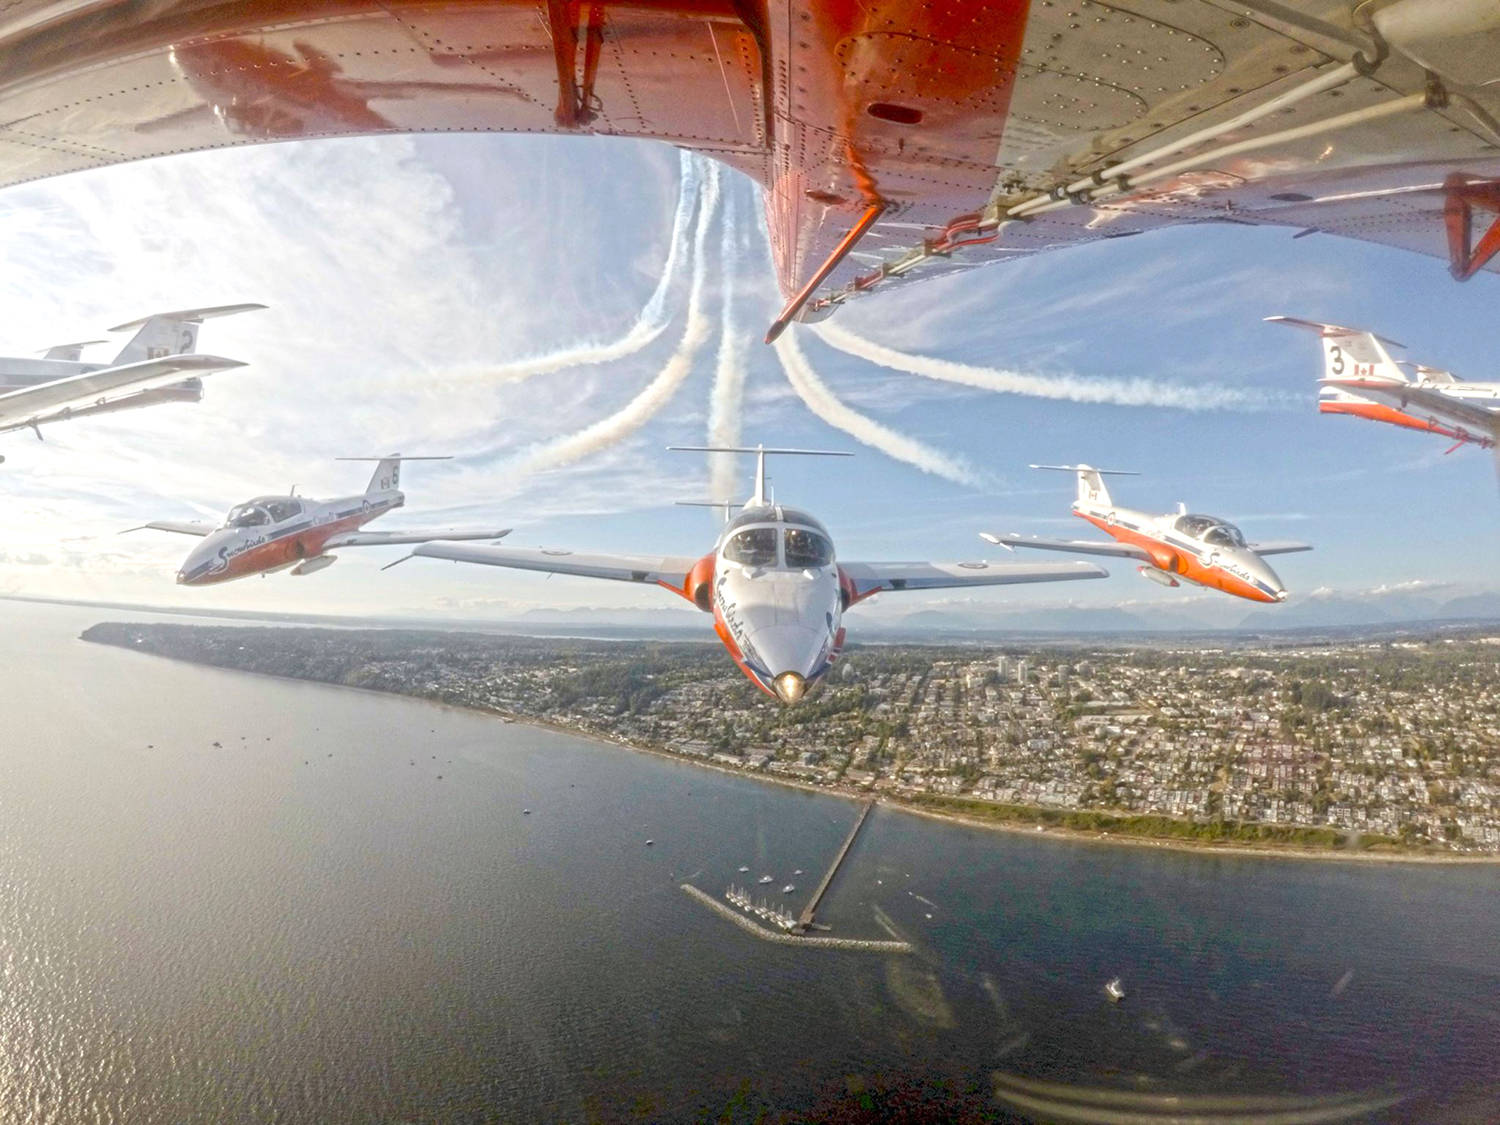 The last time the Snowbirds performed in White Rock was Aug. 16, 2017. (Canadian Forces Snowbirds photo)